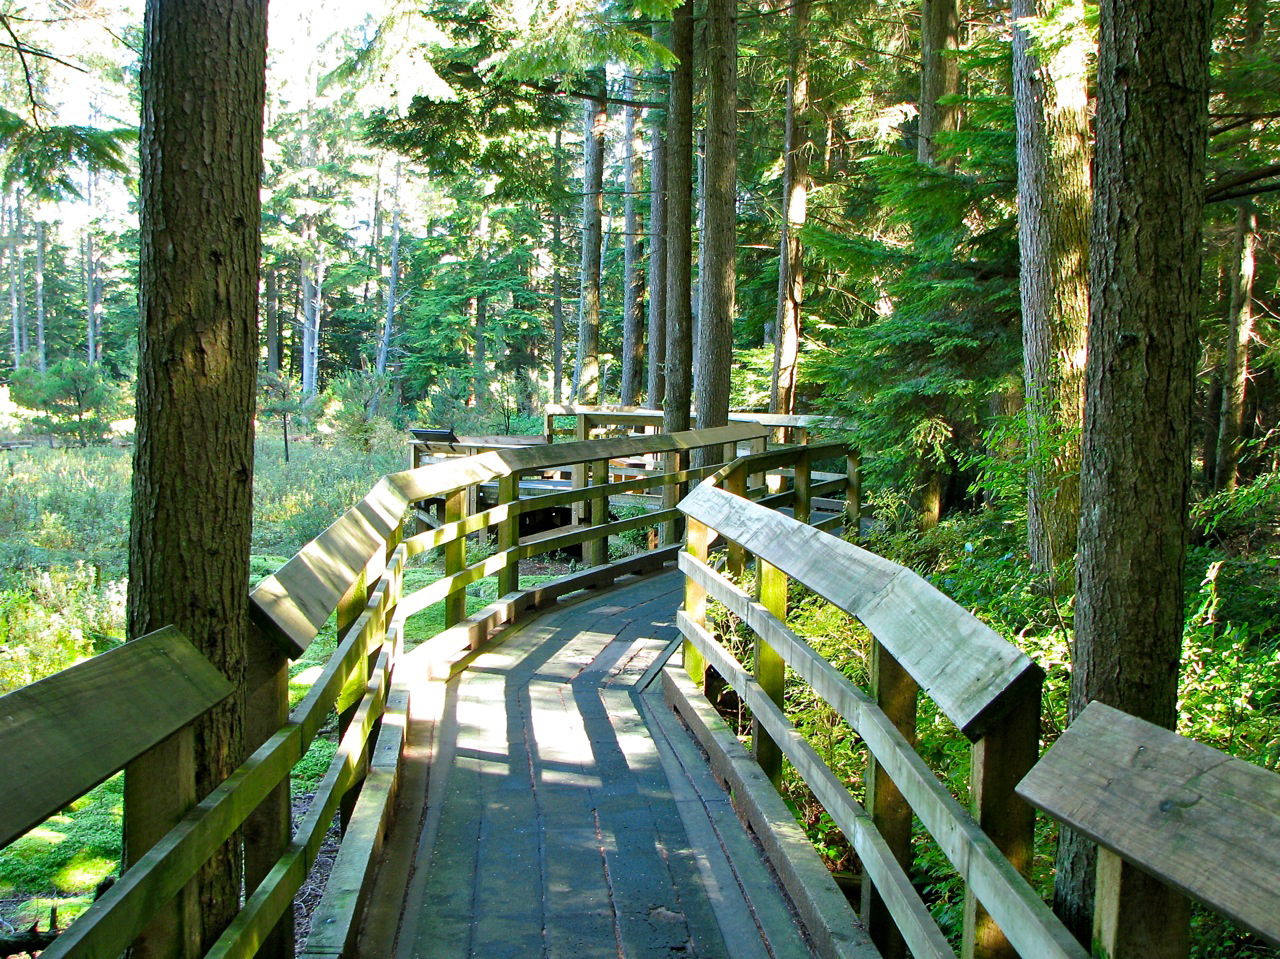 Source: www.pacificparklands.com